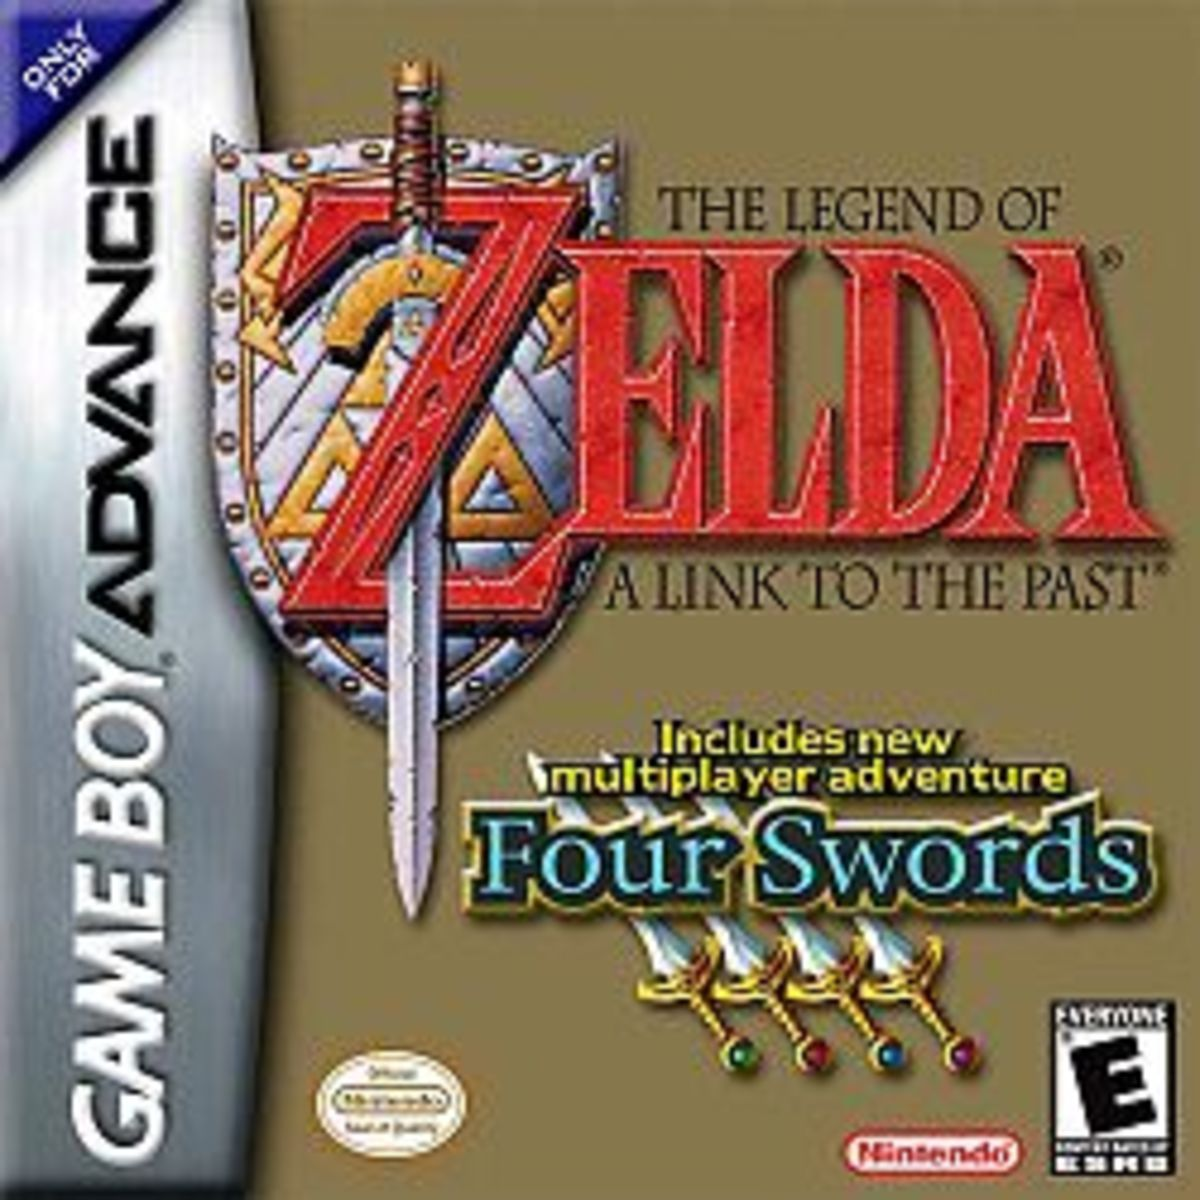 A Link to the Past and Four Swords